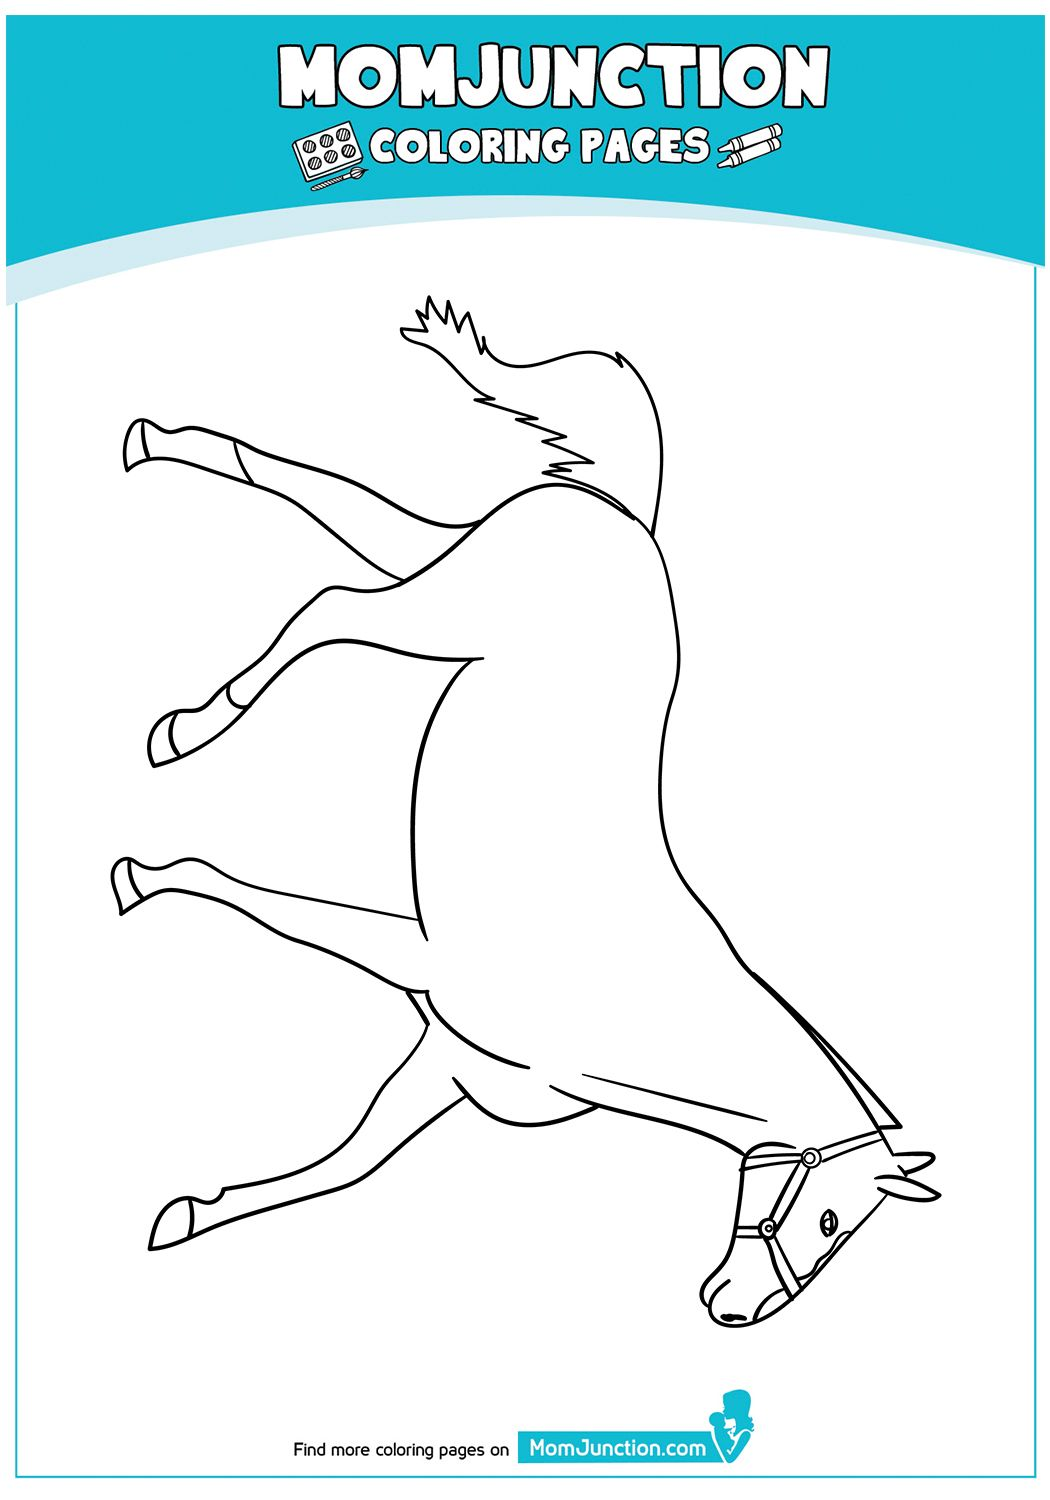 Heavy Warmblood Mare 17 Horse Coloring Pages Coloring Pages Horse Coloring [ 1500 x 1050 Pixel ]